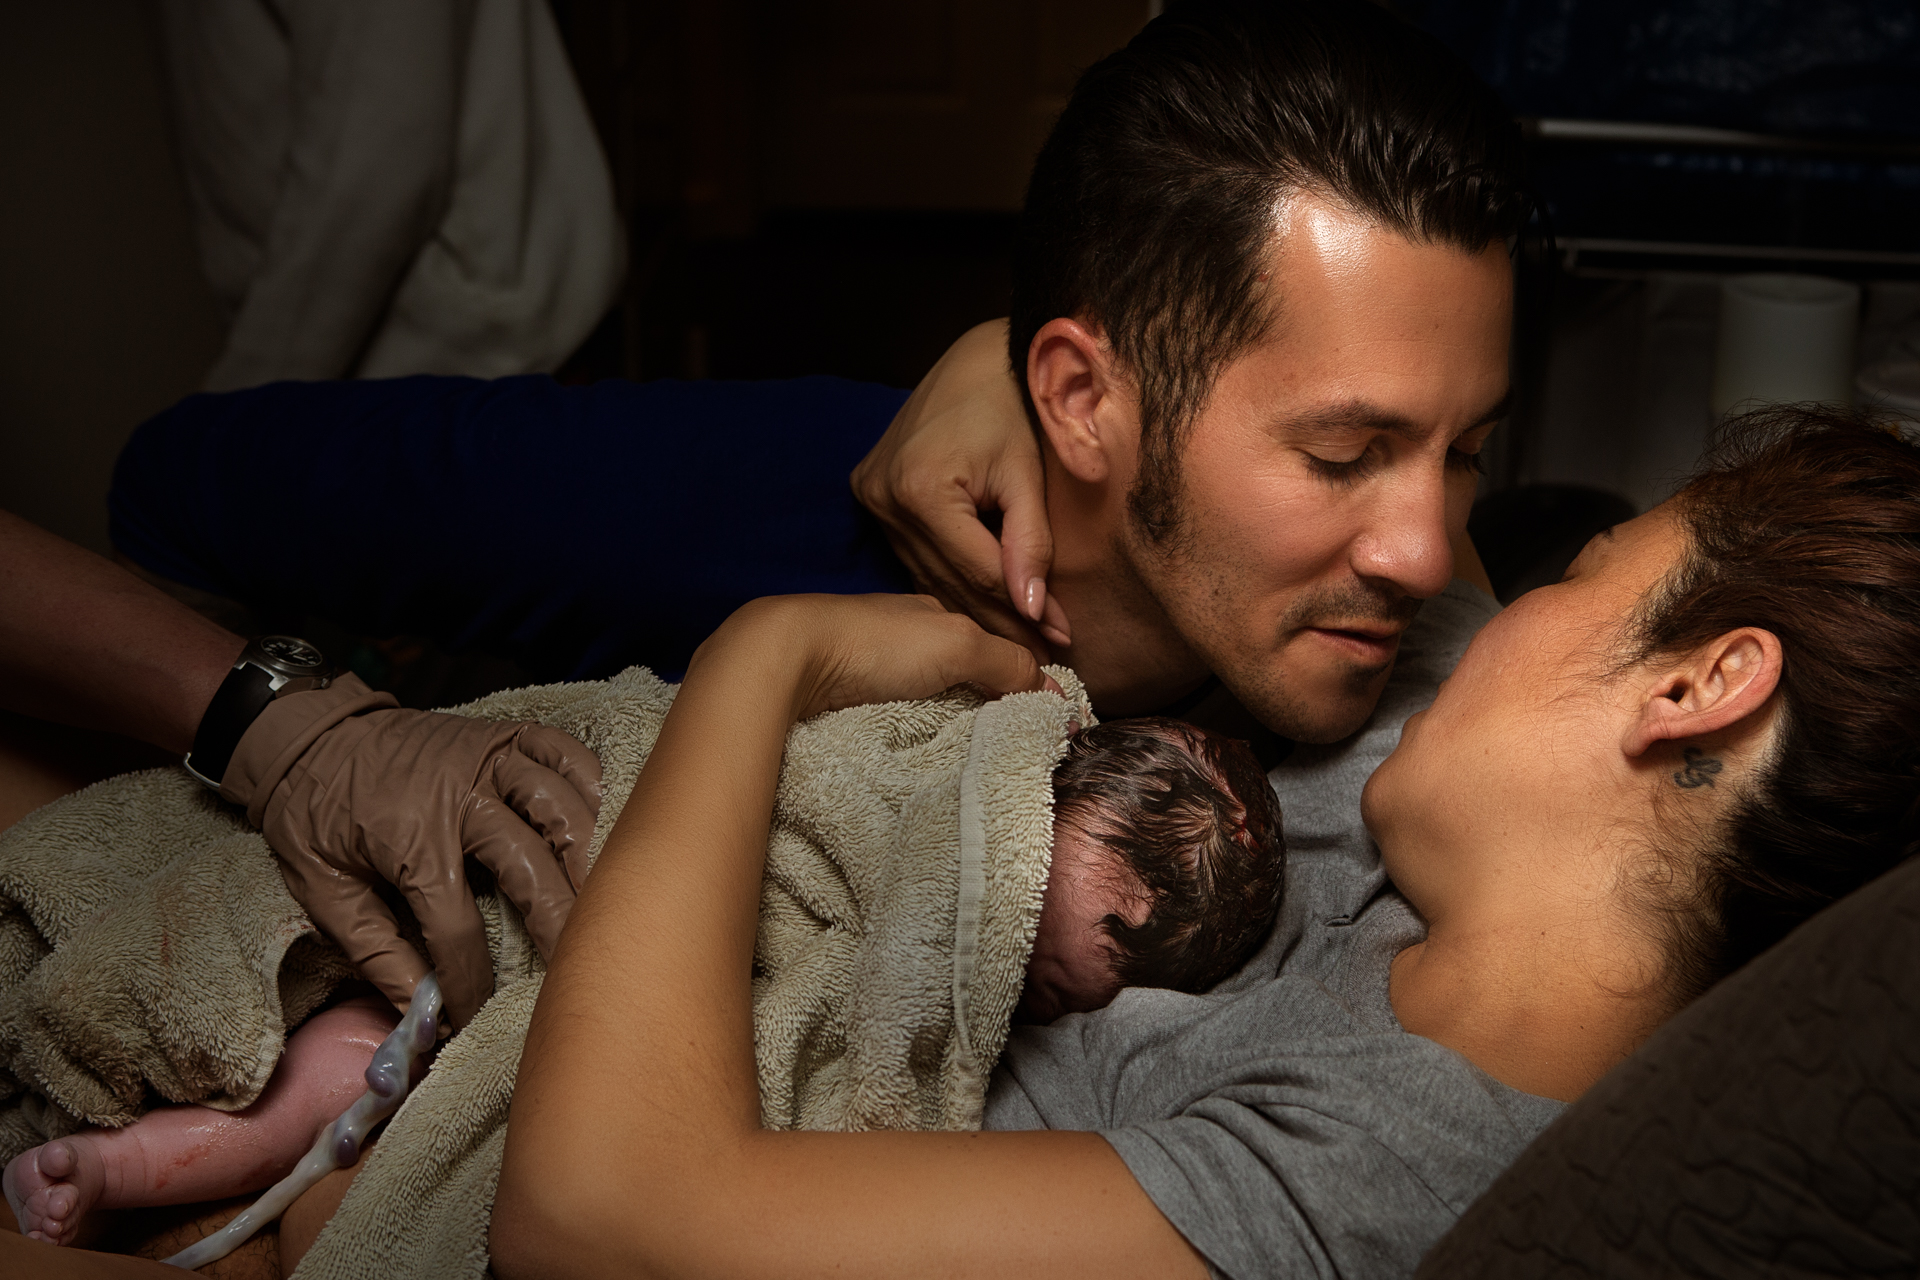 Color birth photo by Leona Darnell showing a mother and father right after birth kissing